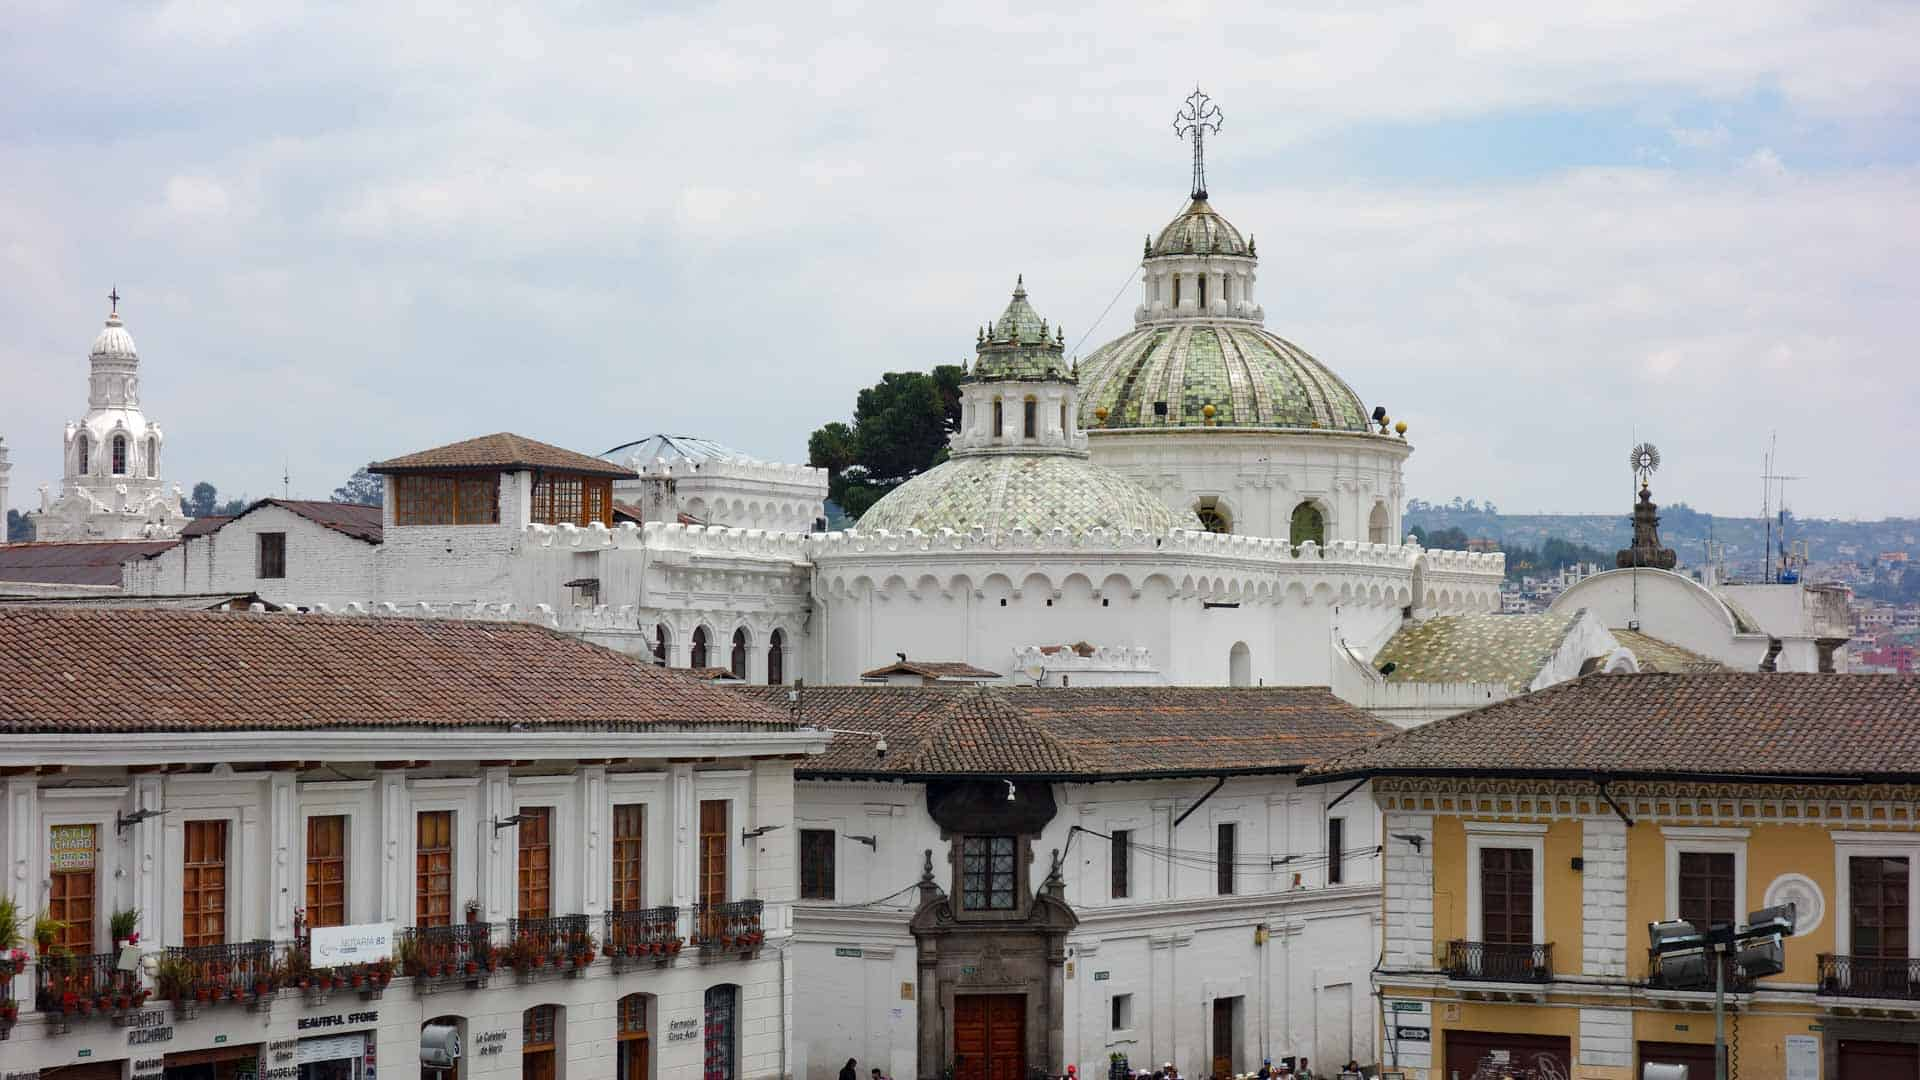 Buildings in the Old Town of Quito